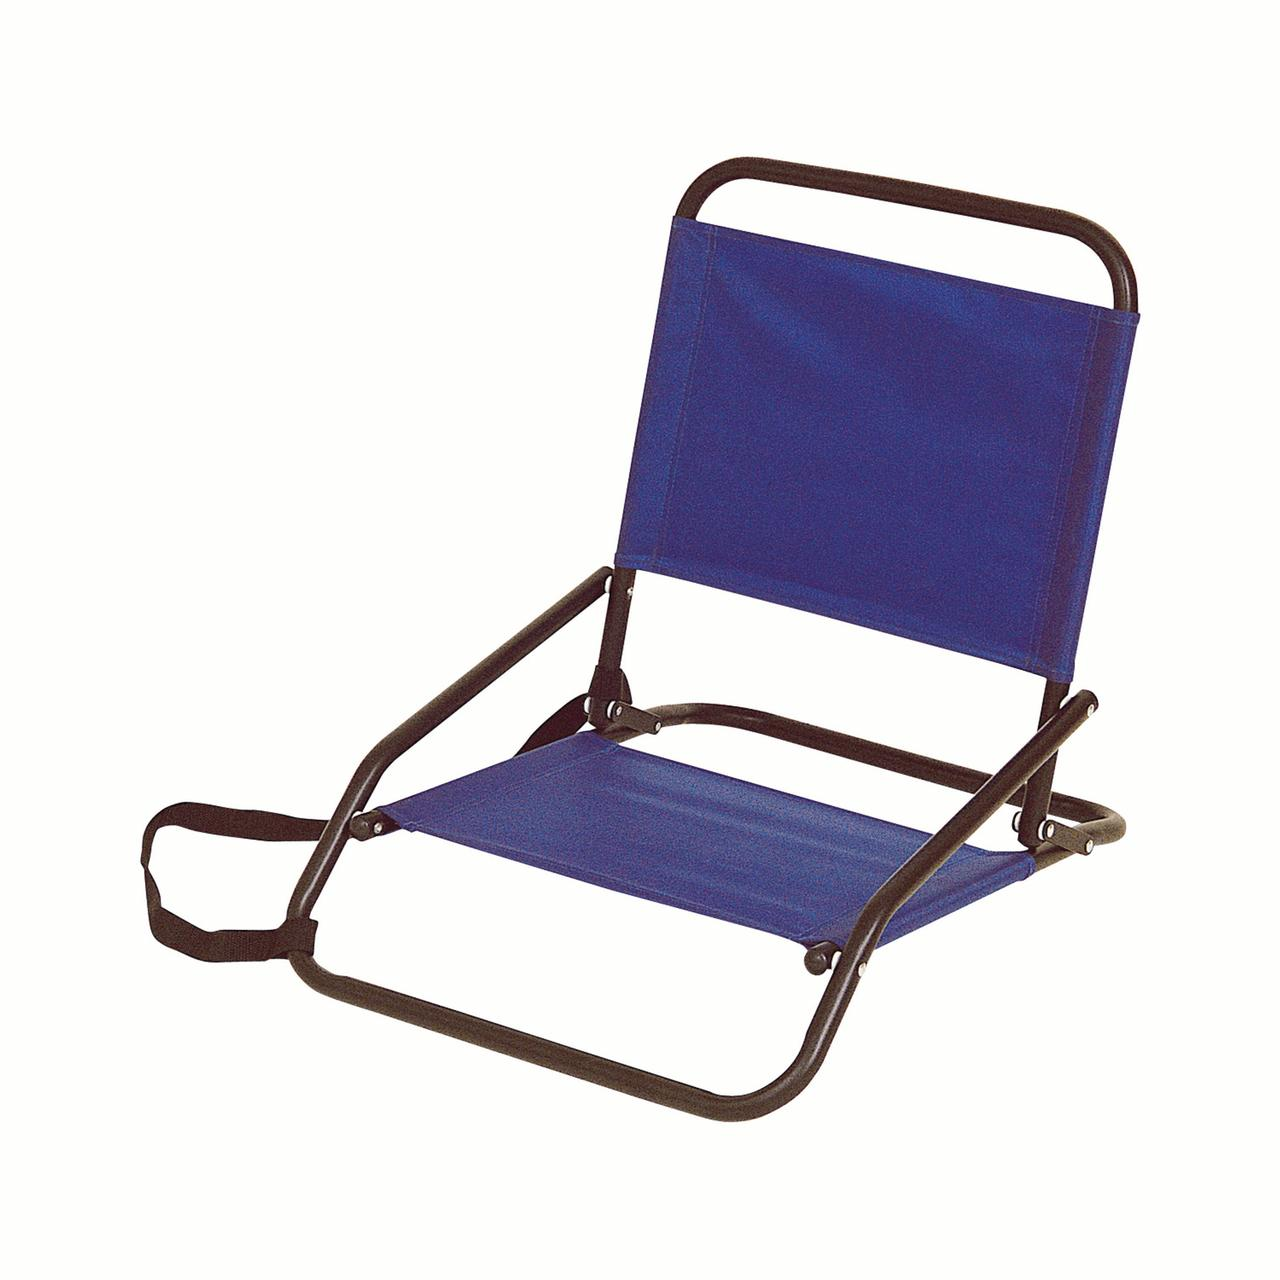 Stansport Sandpiper Sand Chair - Royal Blue